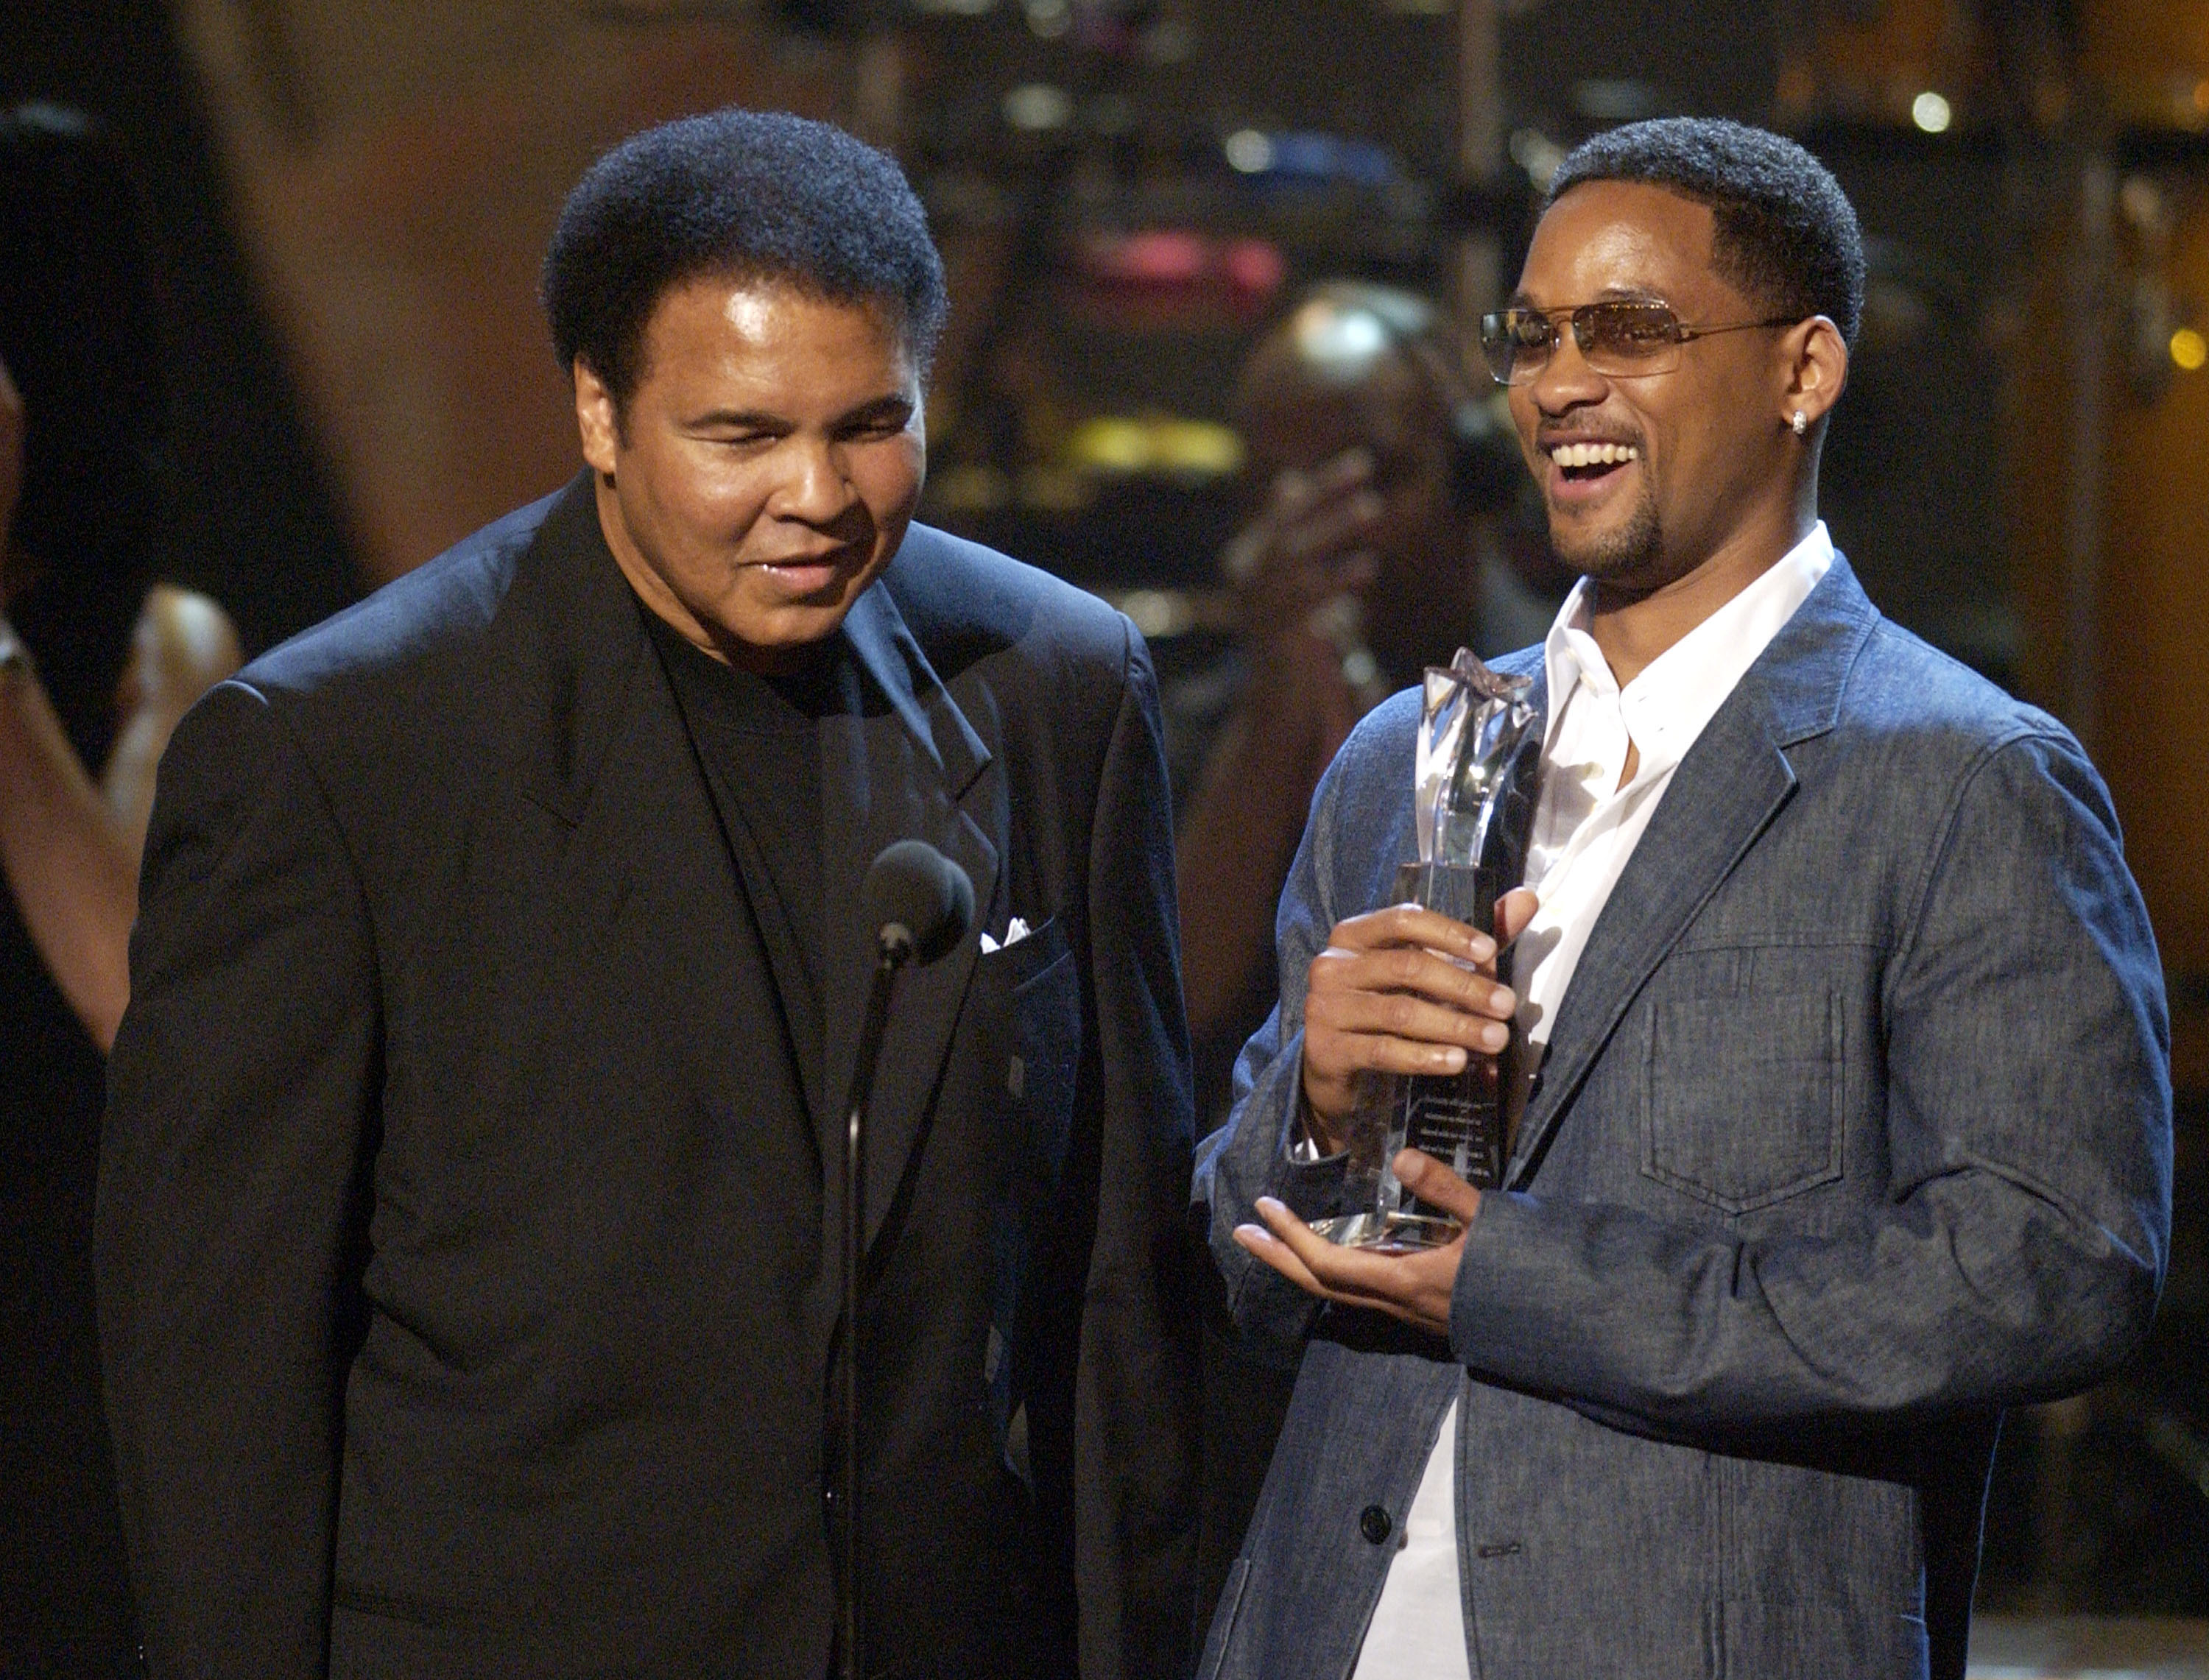 Muhammad Ali accepting his Humanitarian Award from presenter Will Smith during the 2nd annual BET Awards in Los Angeles on June 25, 2002.